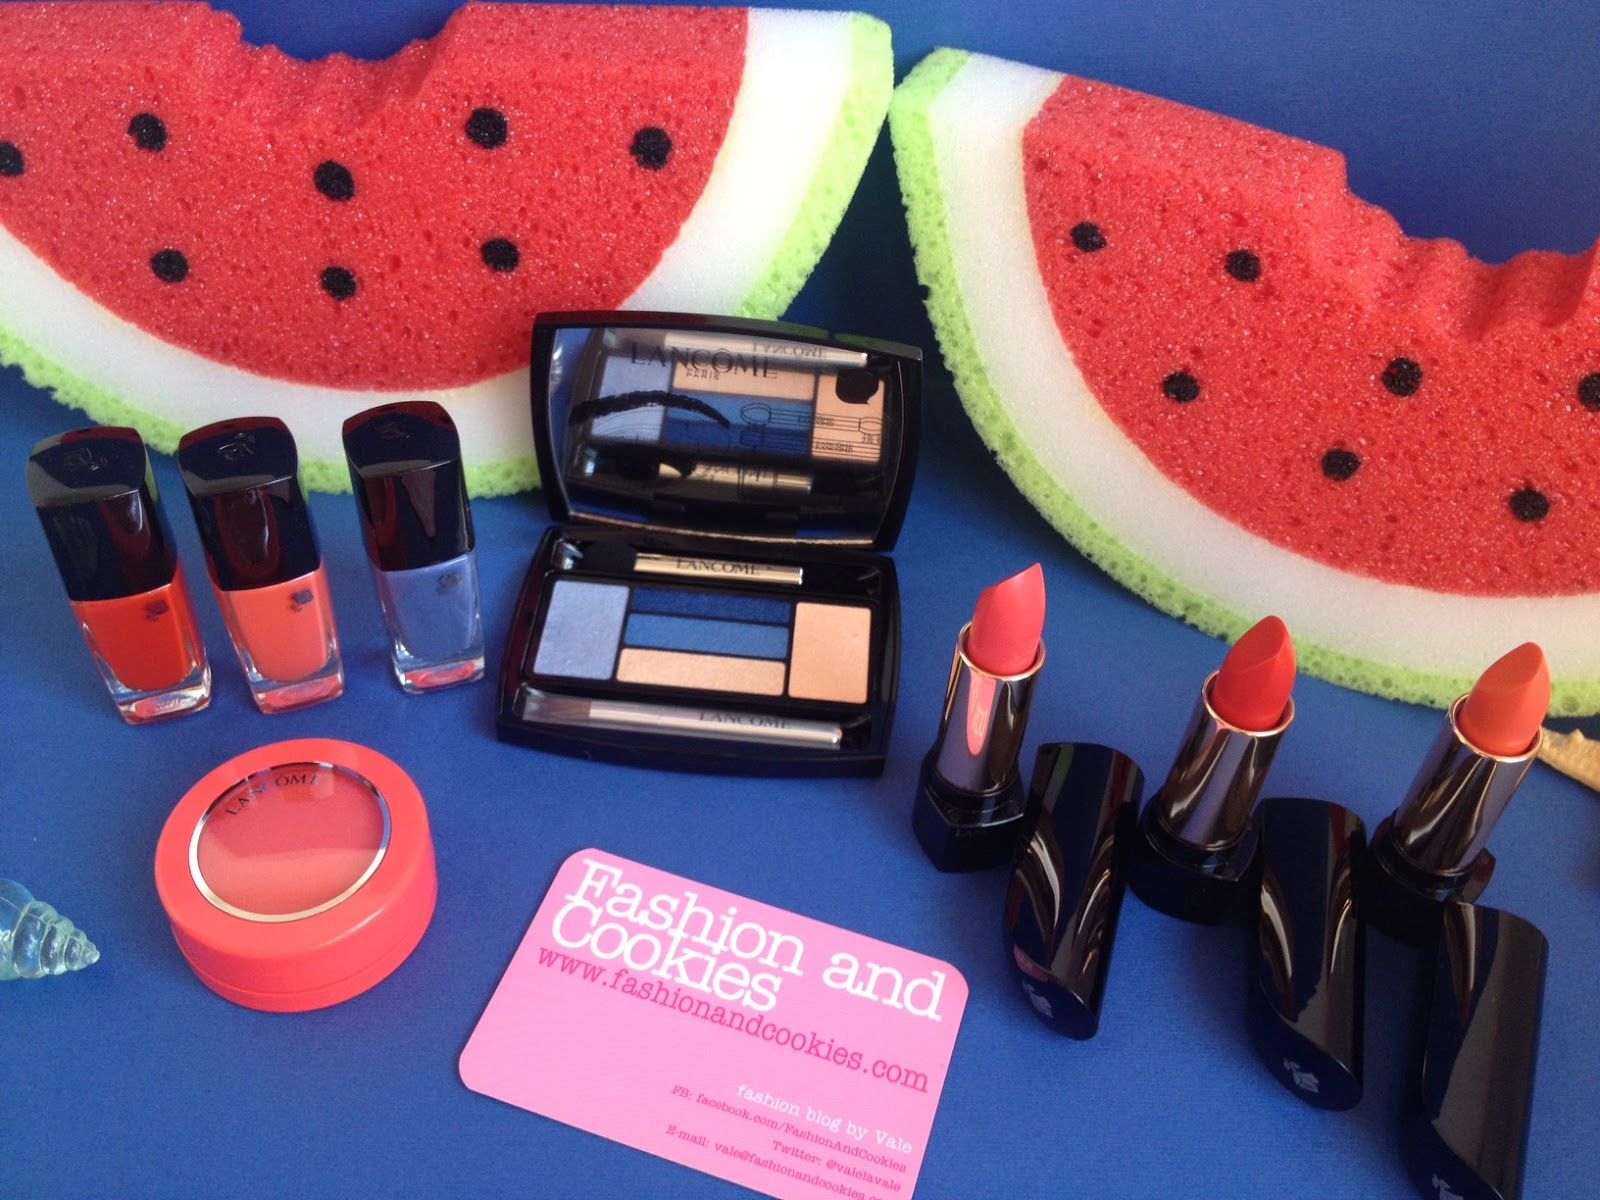 Lancome French Paradise makeup 2015 summer collection on Fashion and Cookies fashion blog